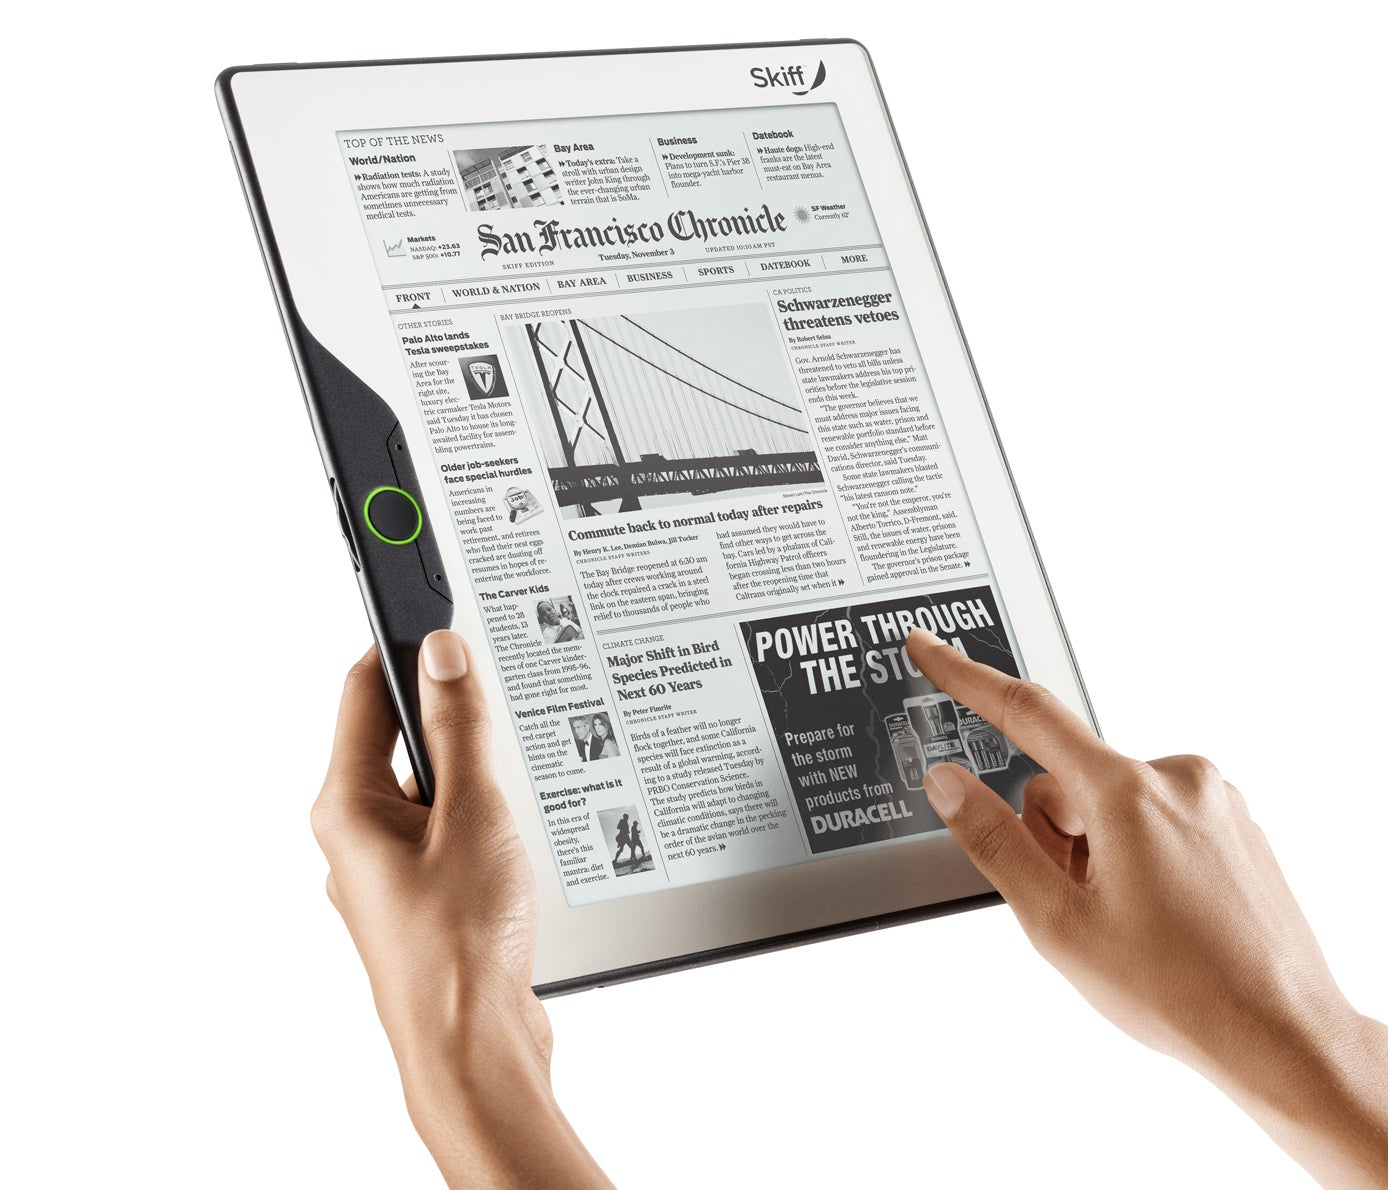 Lector Libros Epub Skiff 39s Innovative Big Screen E Reader To Debut At Ces